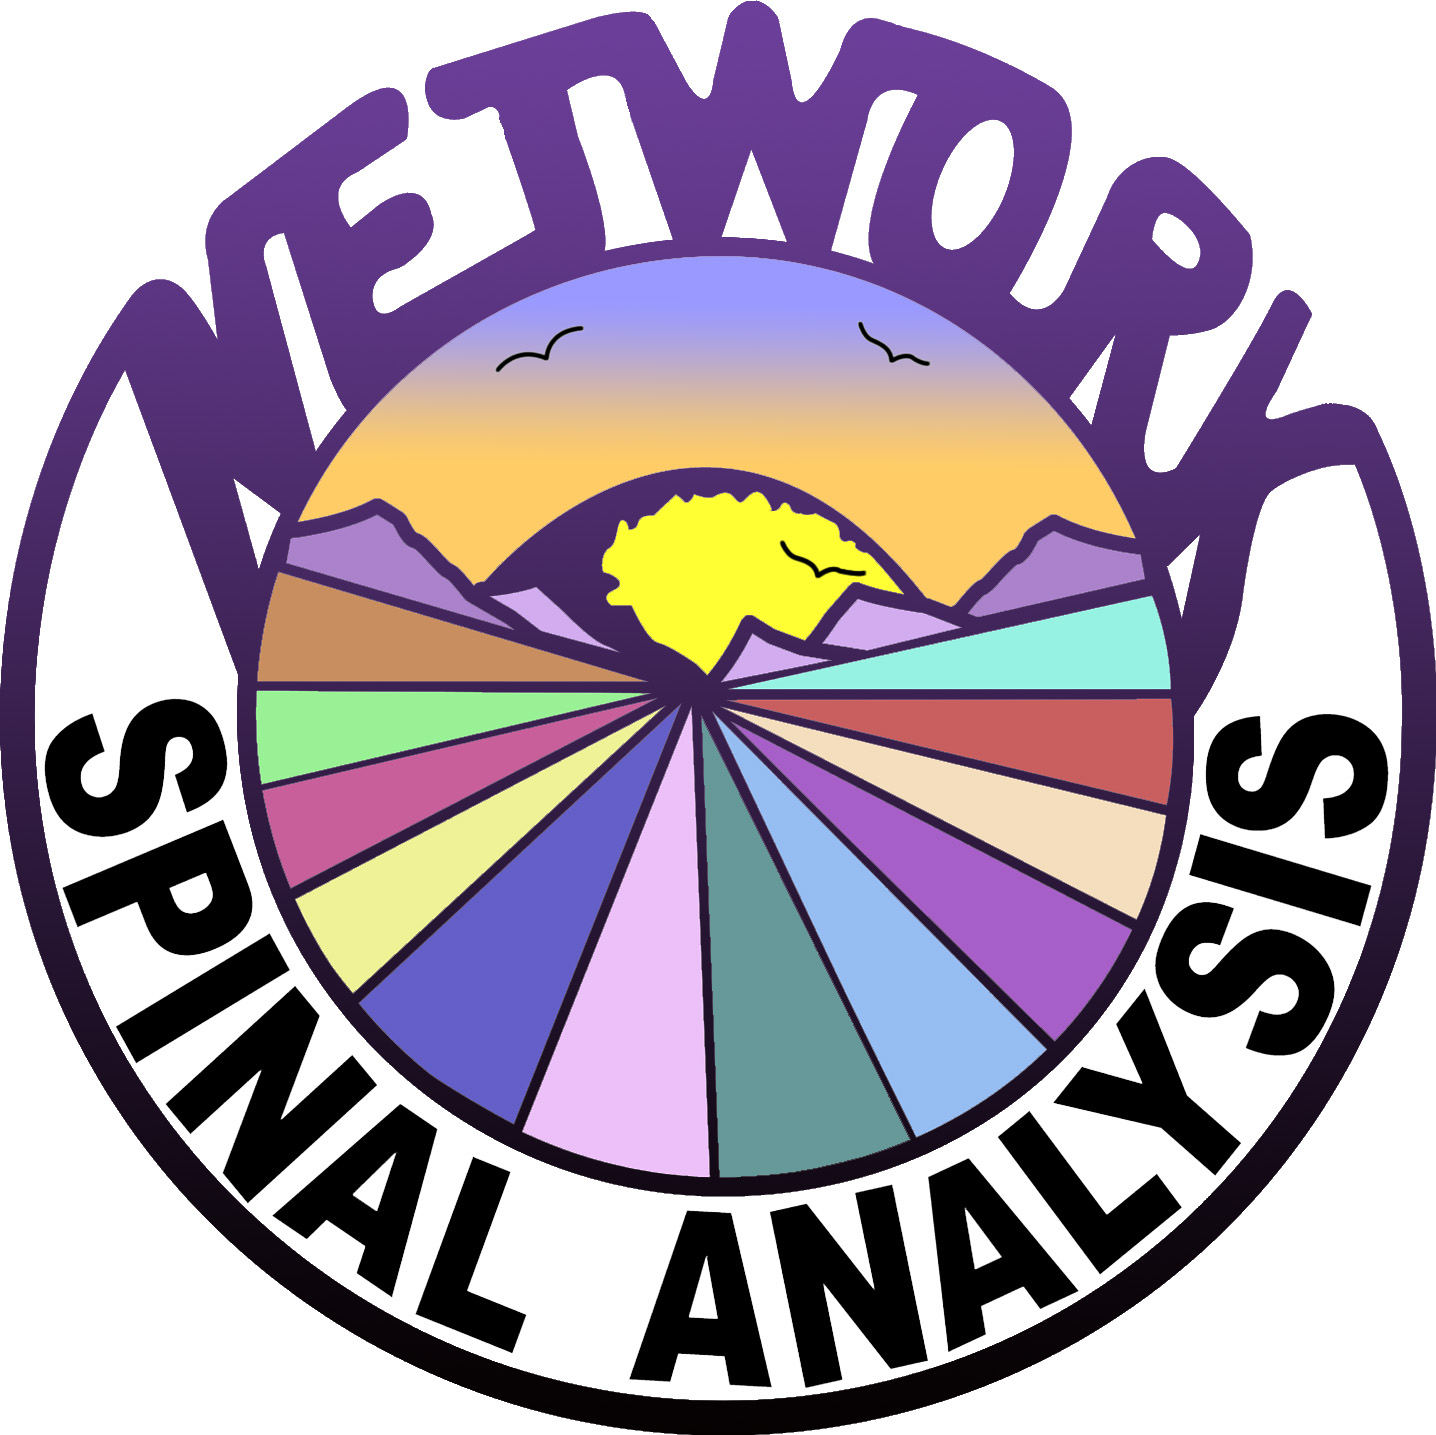 Network Spinal Analysis